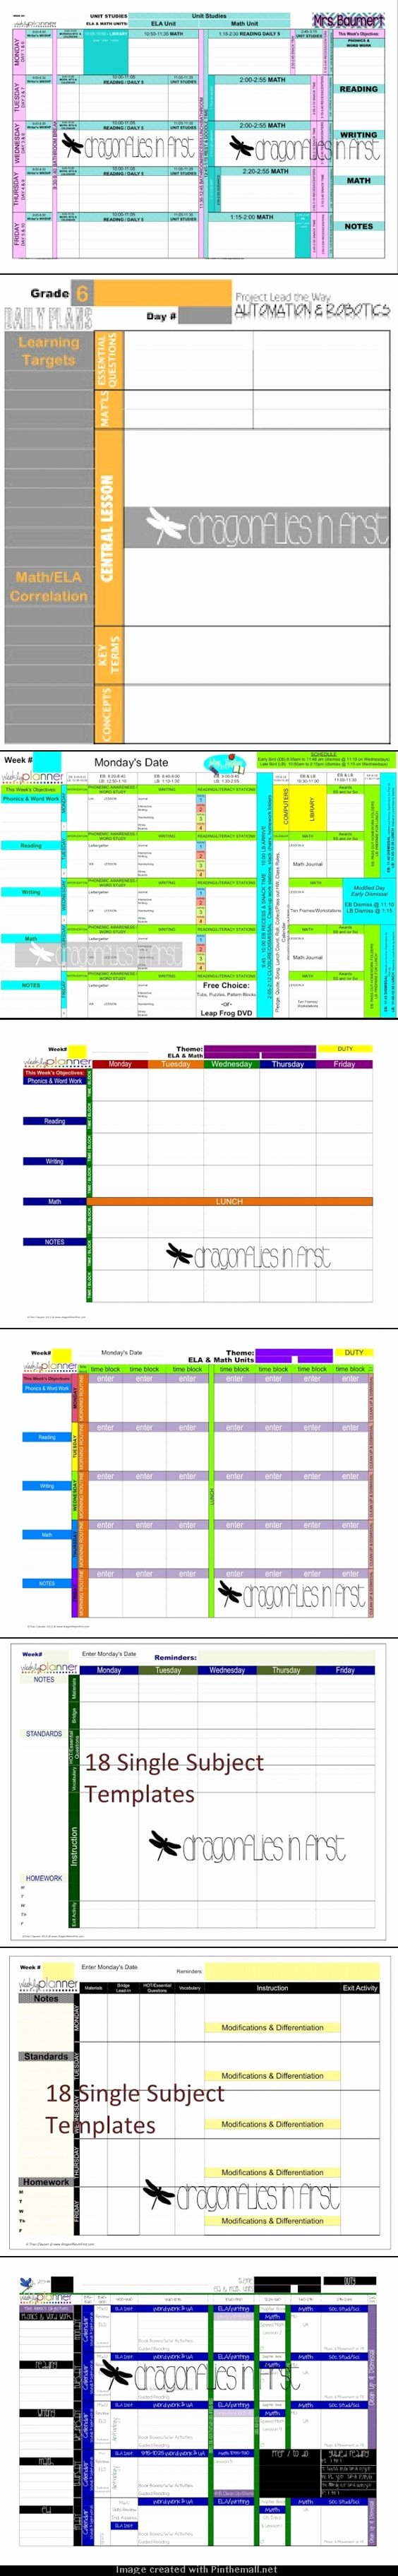 Ccs Lesson Plan Template Fresh Get organized for the New Year Digital Teacher Plan Book